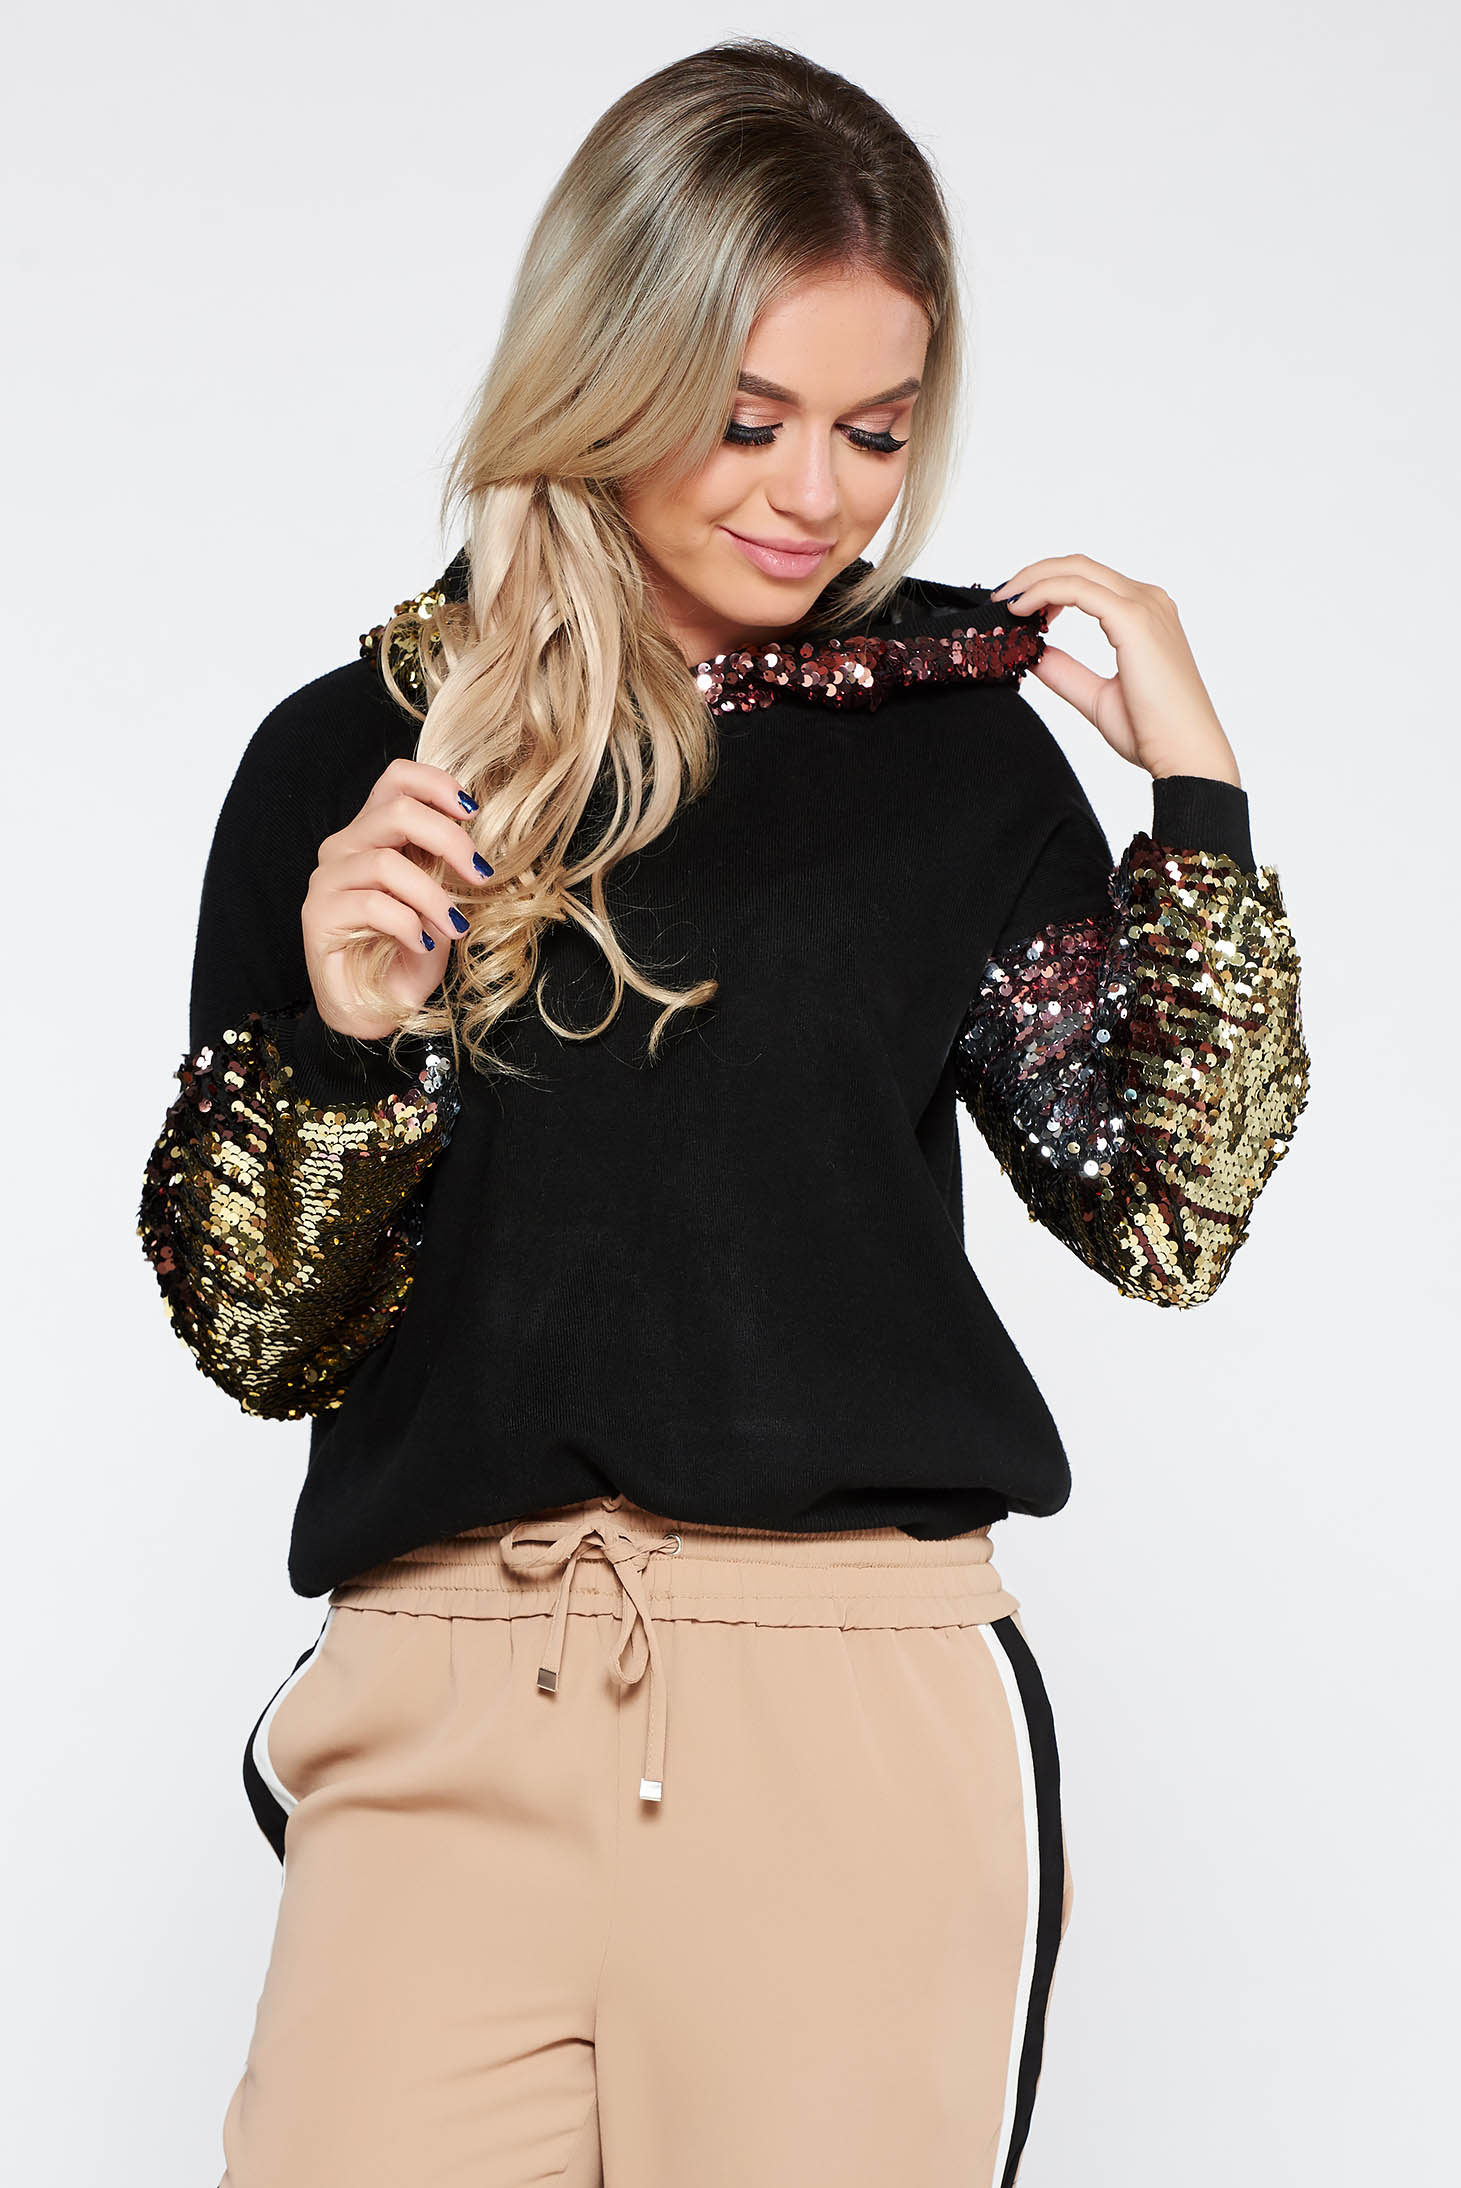 Sweater SunShine black casual flared knitted fabric soft fabric with sequin embellished details